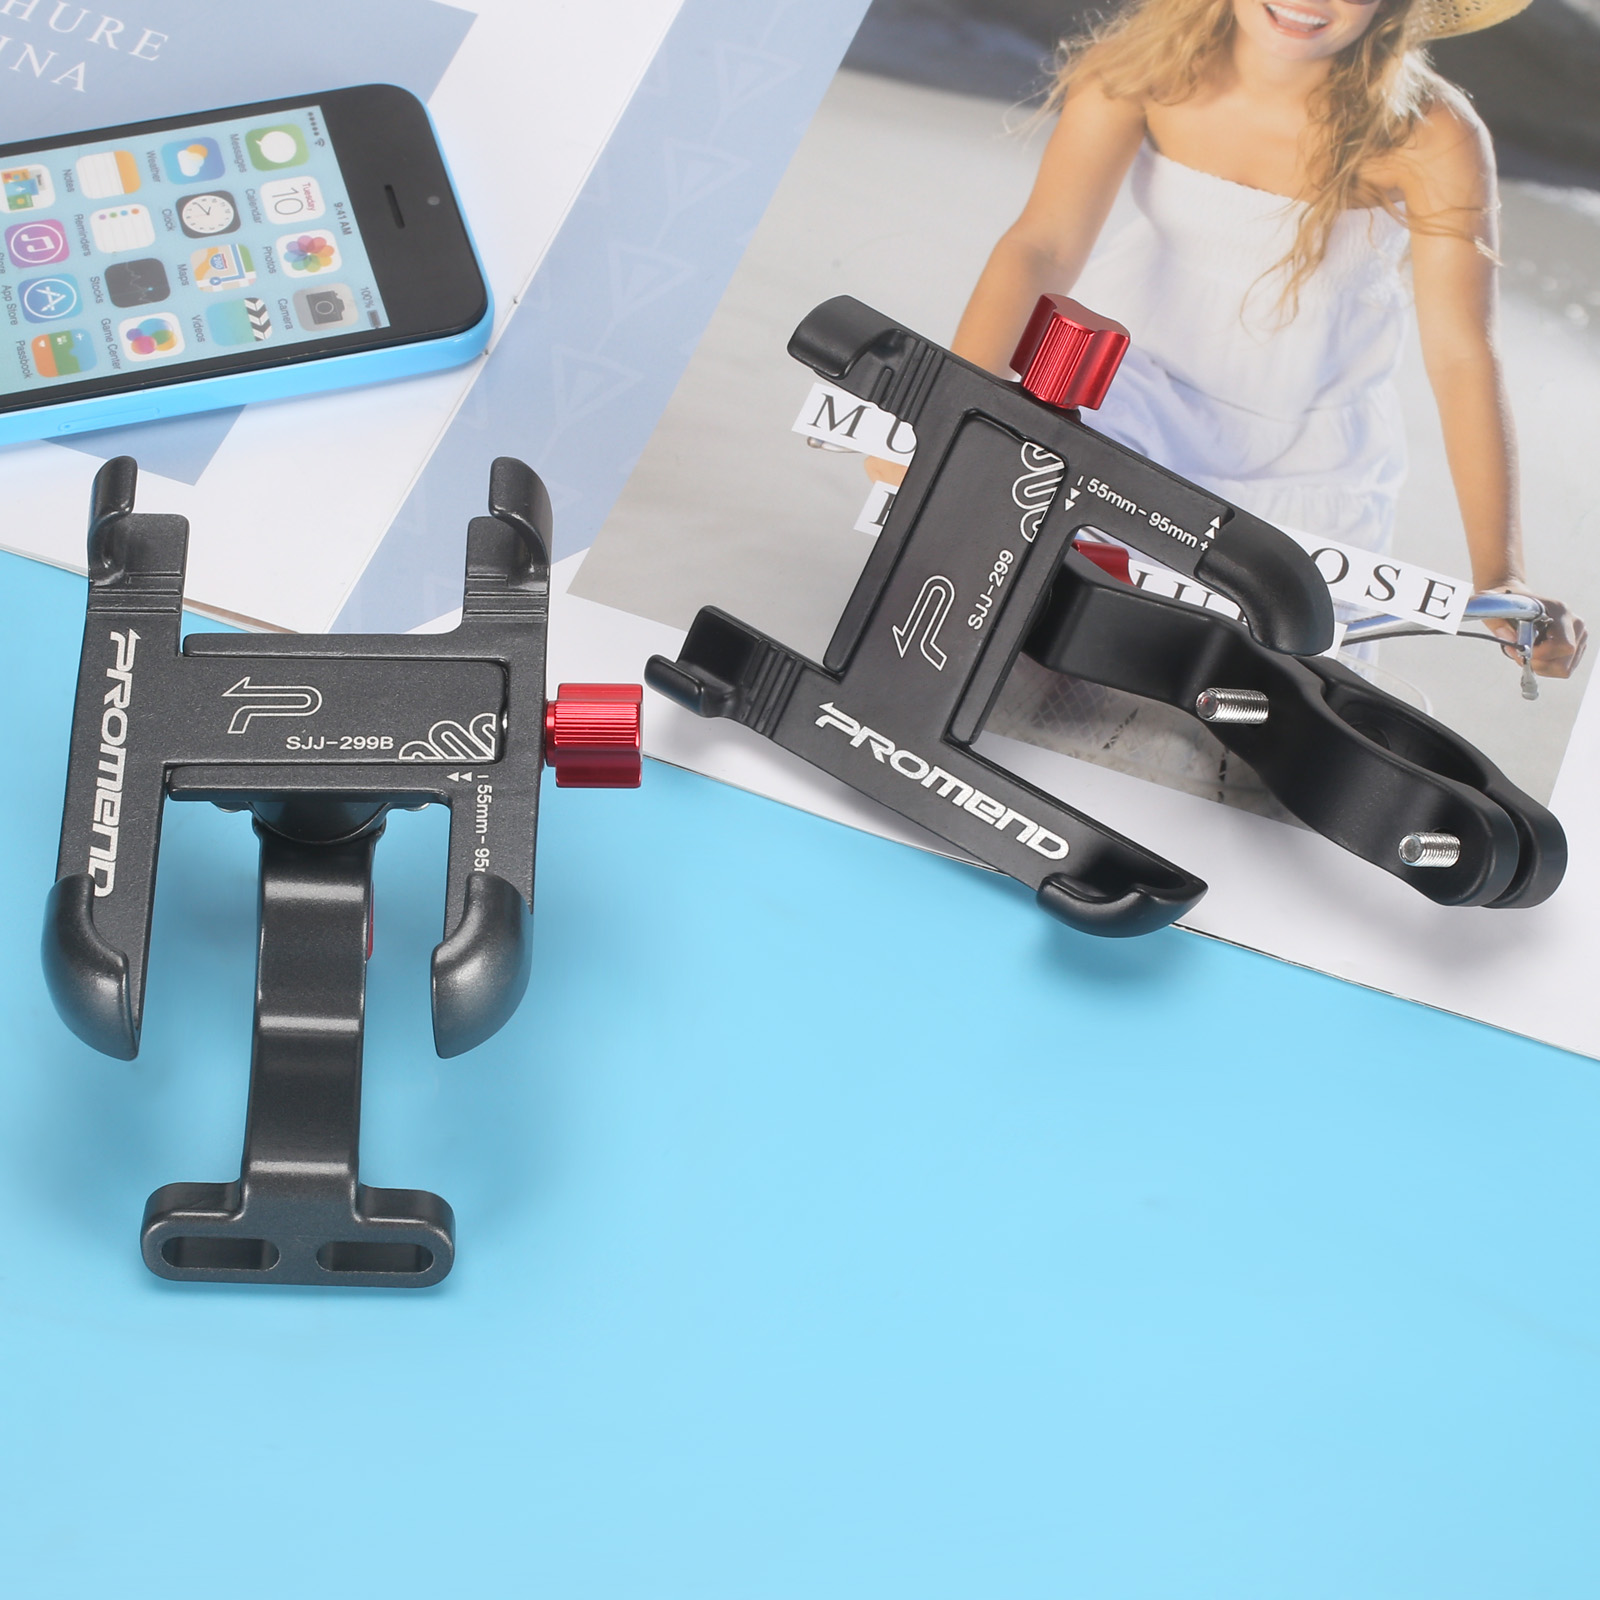 Promend Bike Mobile Phone Holder With 360 Degree Rotatable For Bike Car Bicycle 17